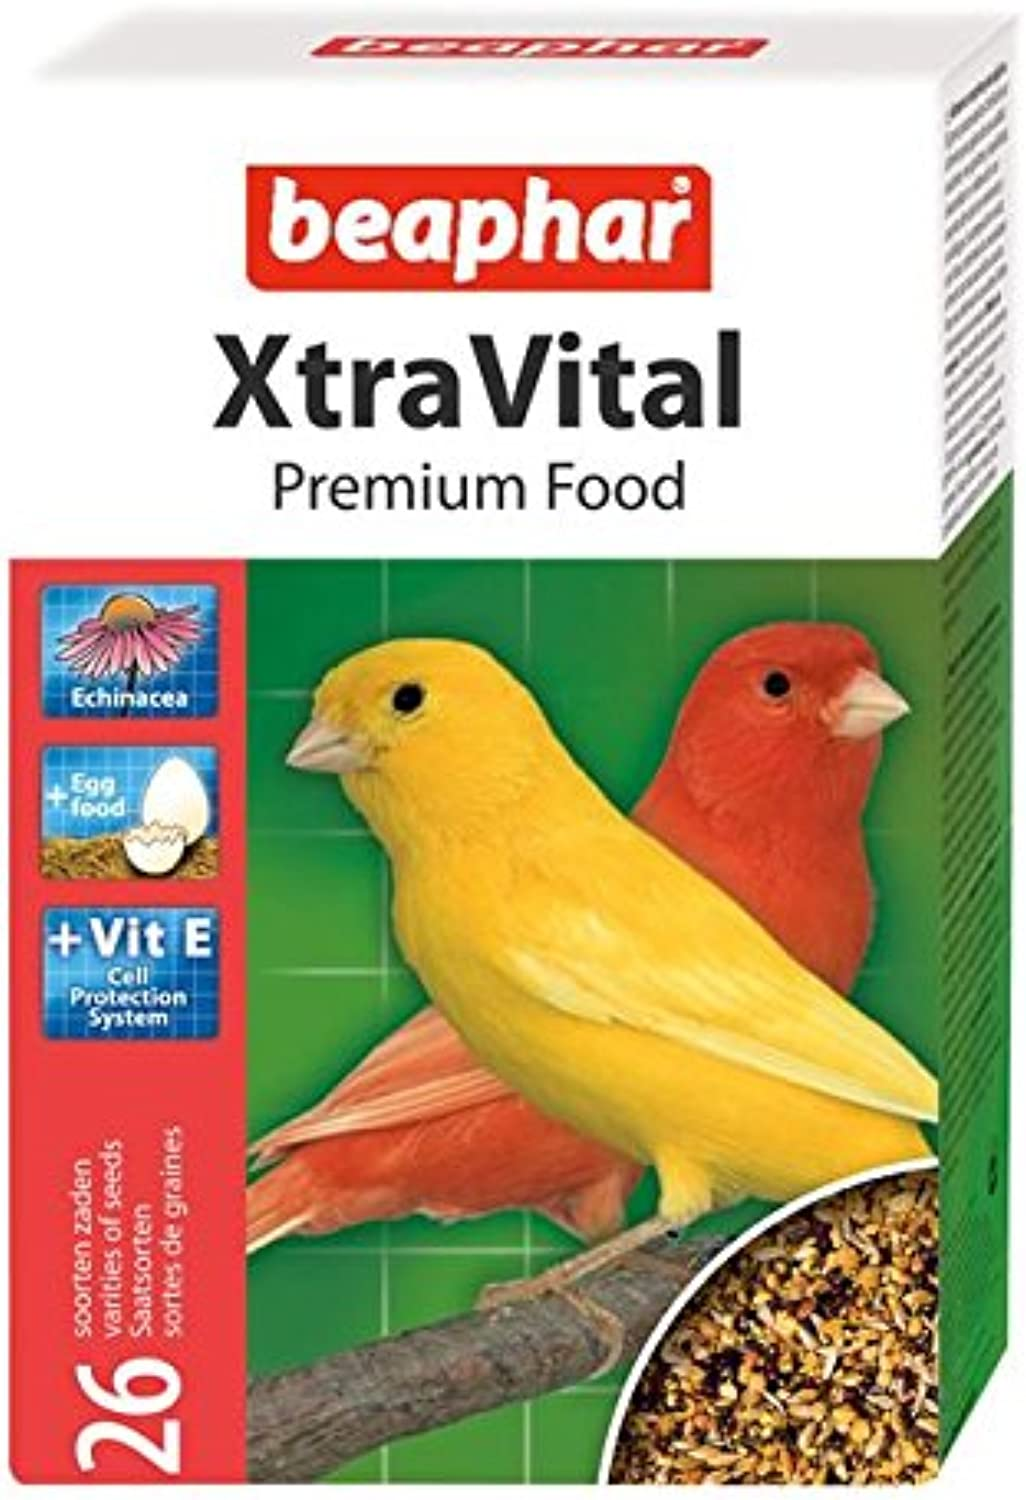 Beaphar XtraVital Canary Food 500g (PACK OF 6)